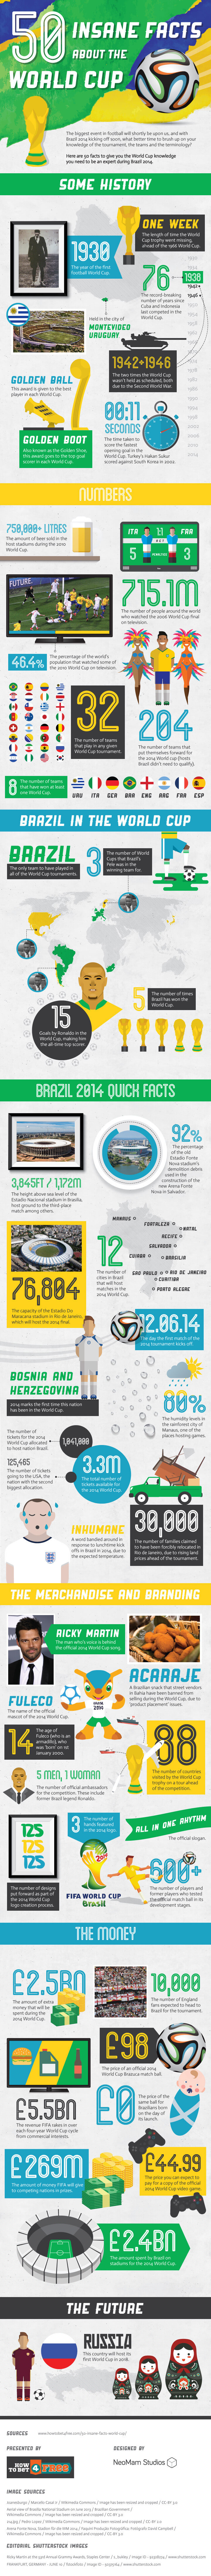 Facts About The FIFA World Cup